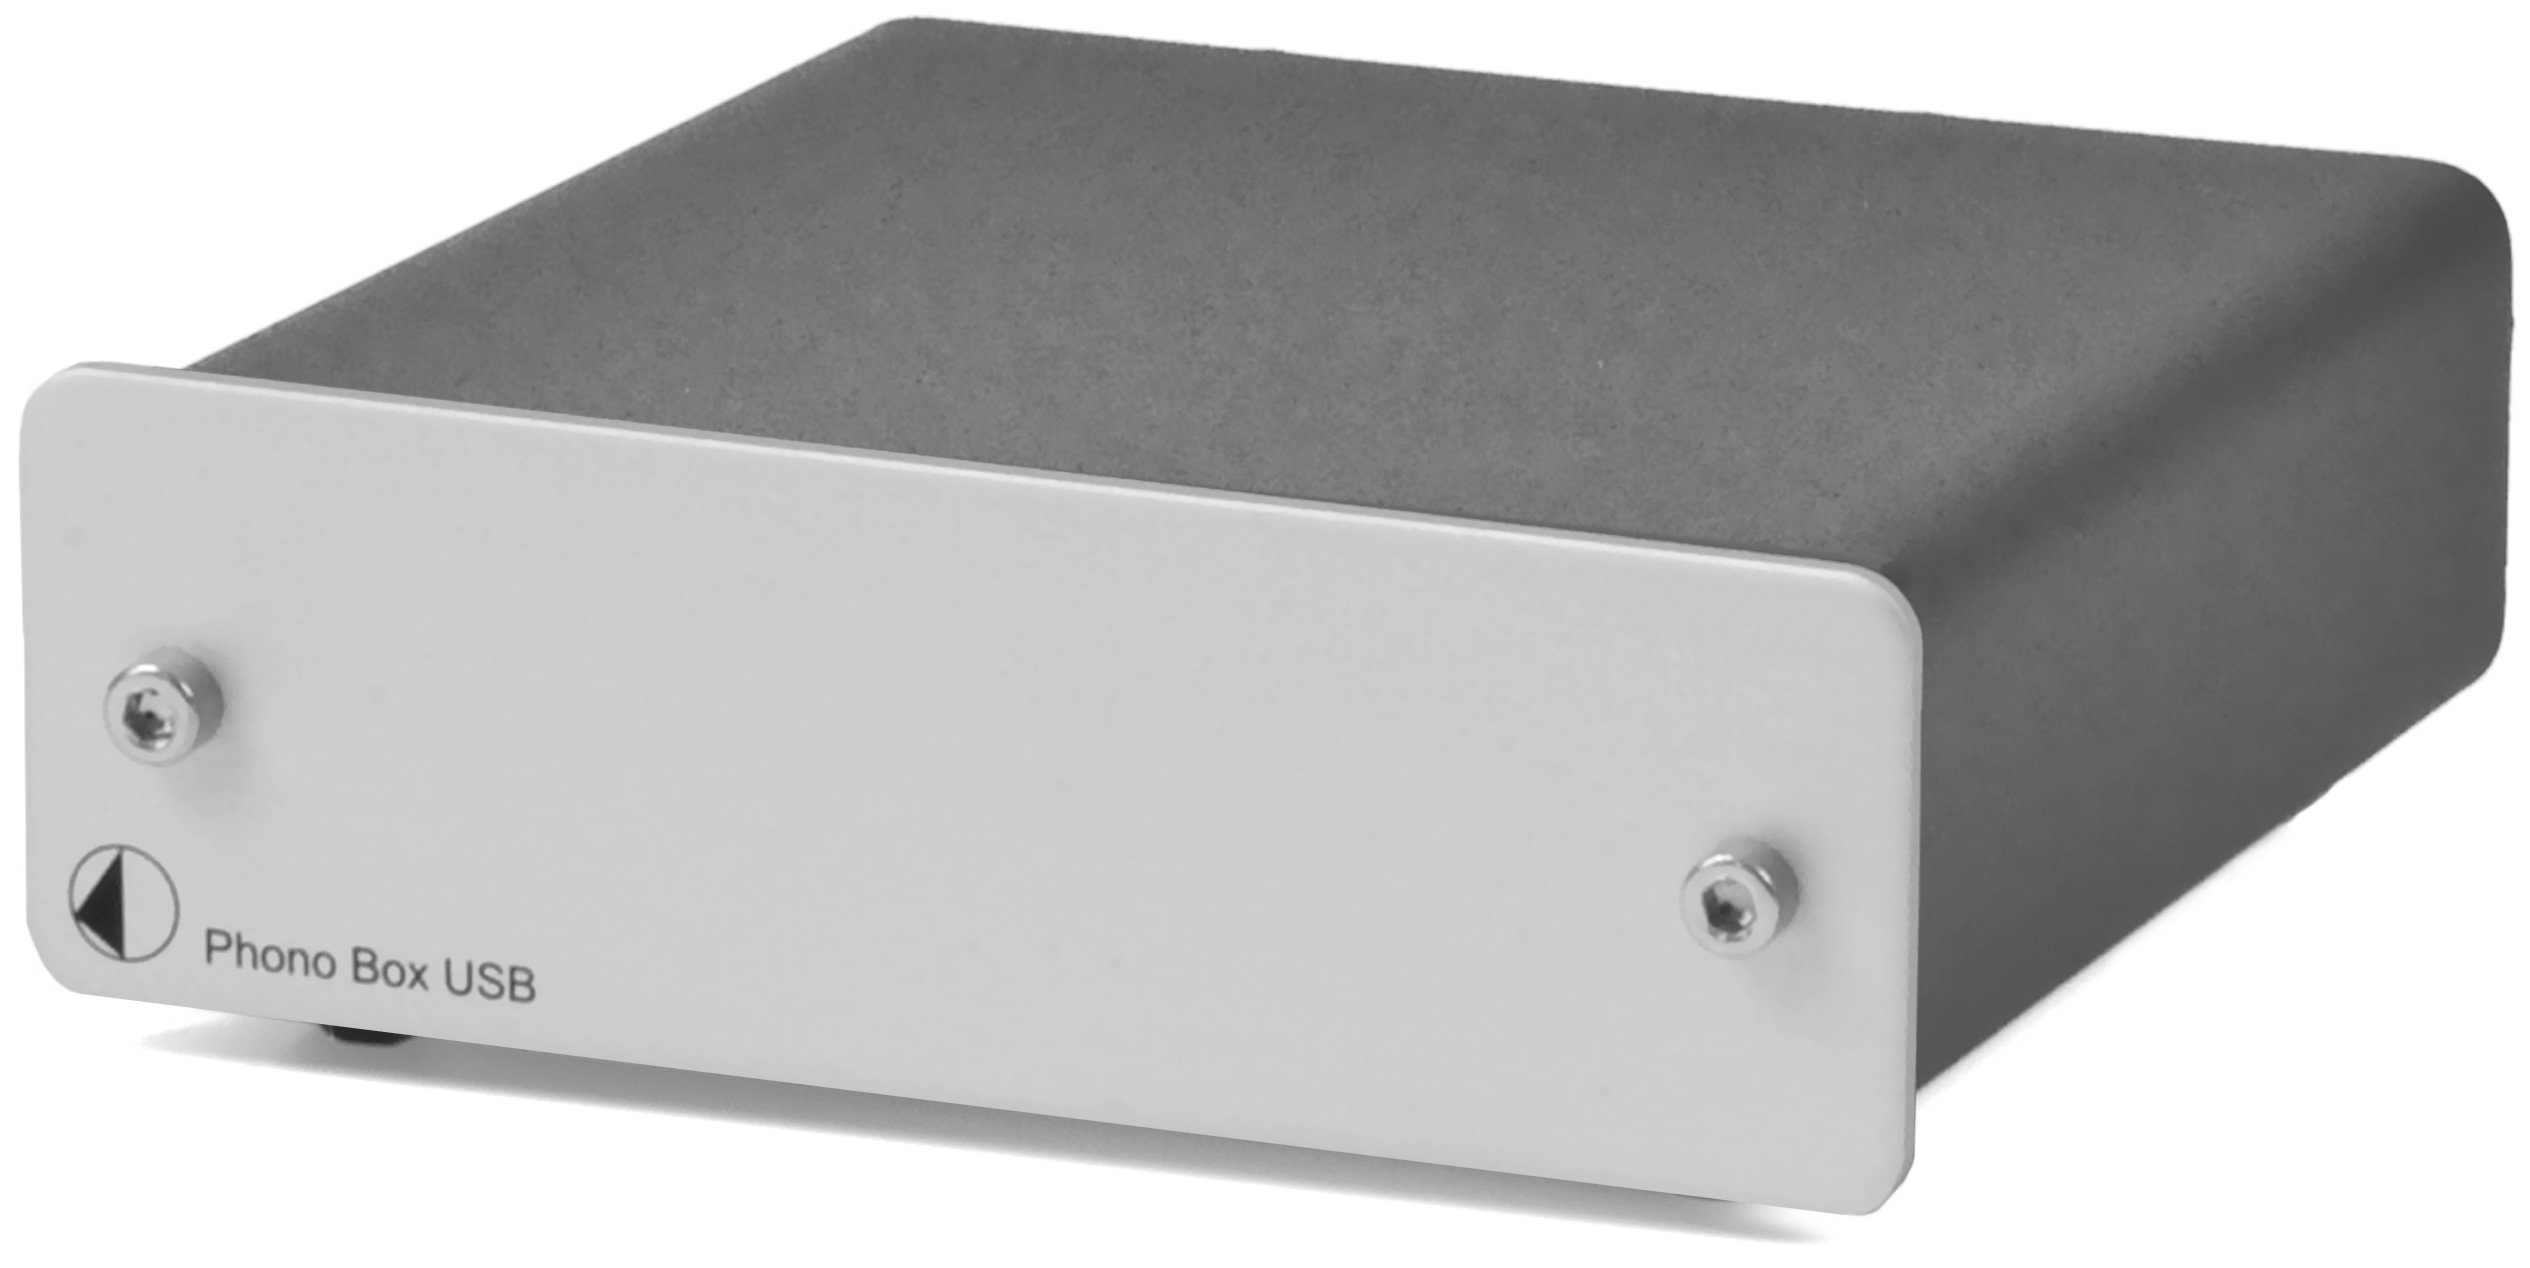 Pro-Ject Phono Box USB Phono PreAmplifier, Silver by Pro-Ject